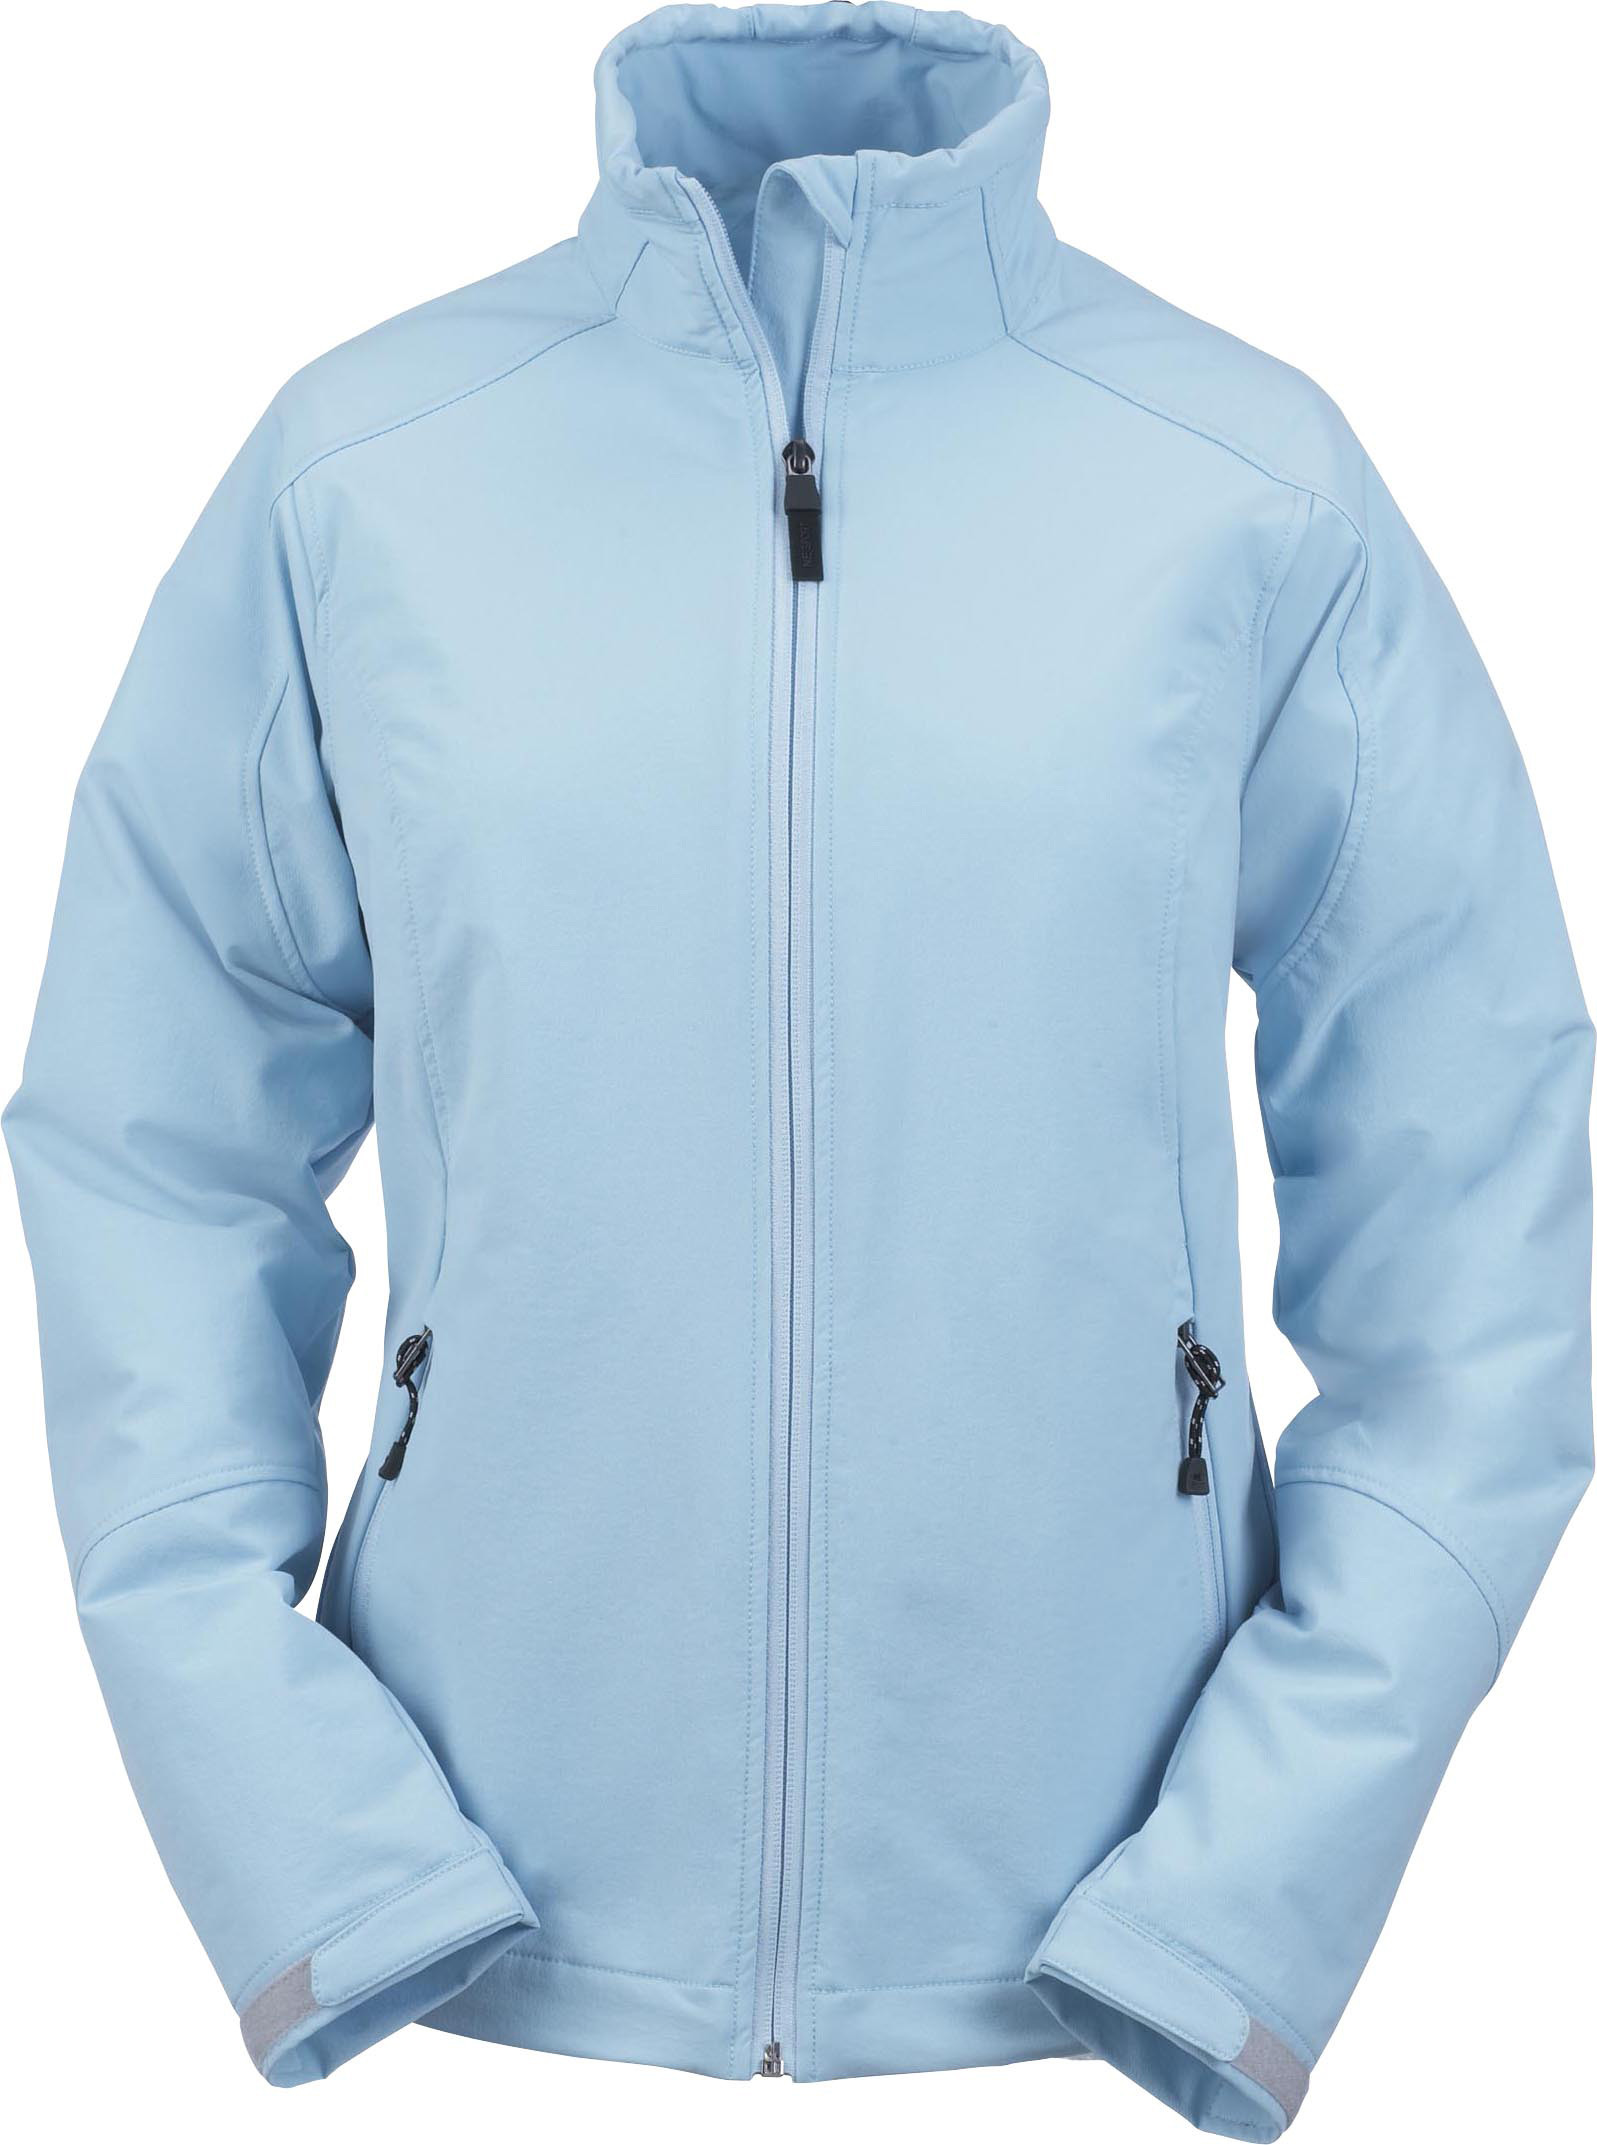 Ash City Soft Shells 78609 - Ladies' Double Weave Stretch Soft Shell Sport Jacket